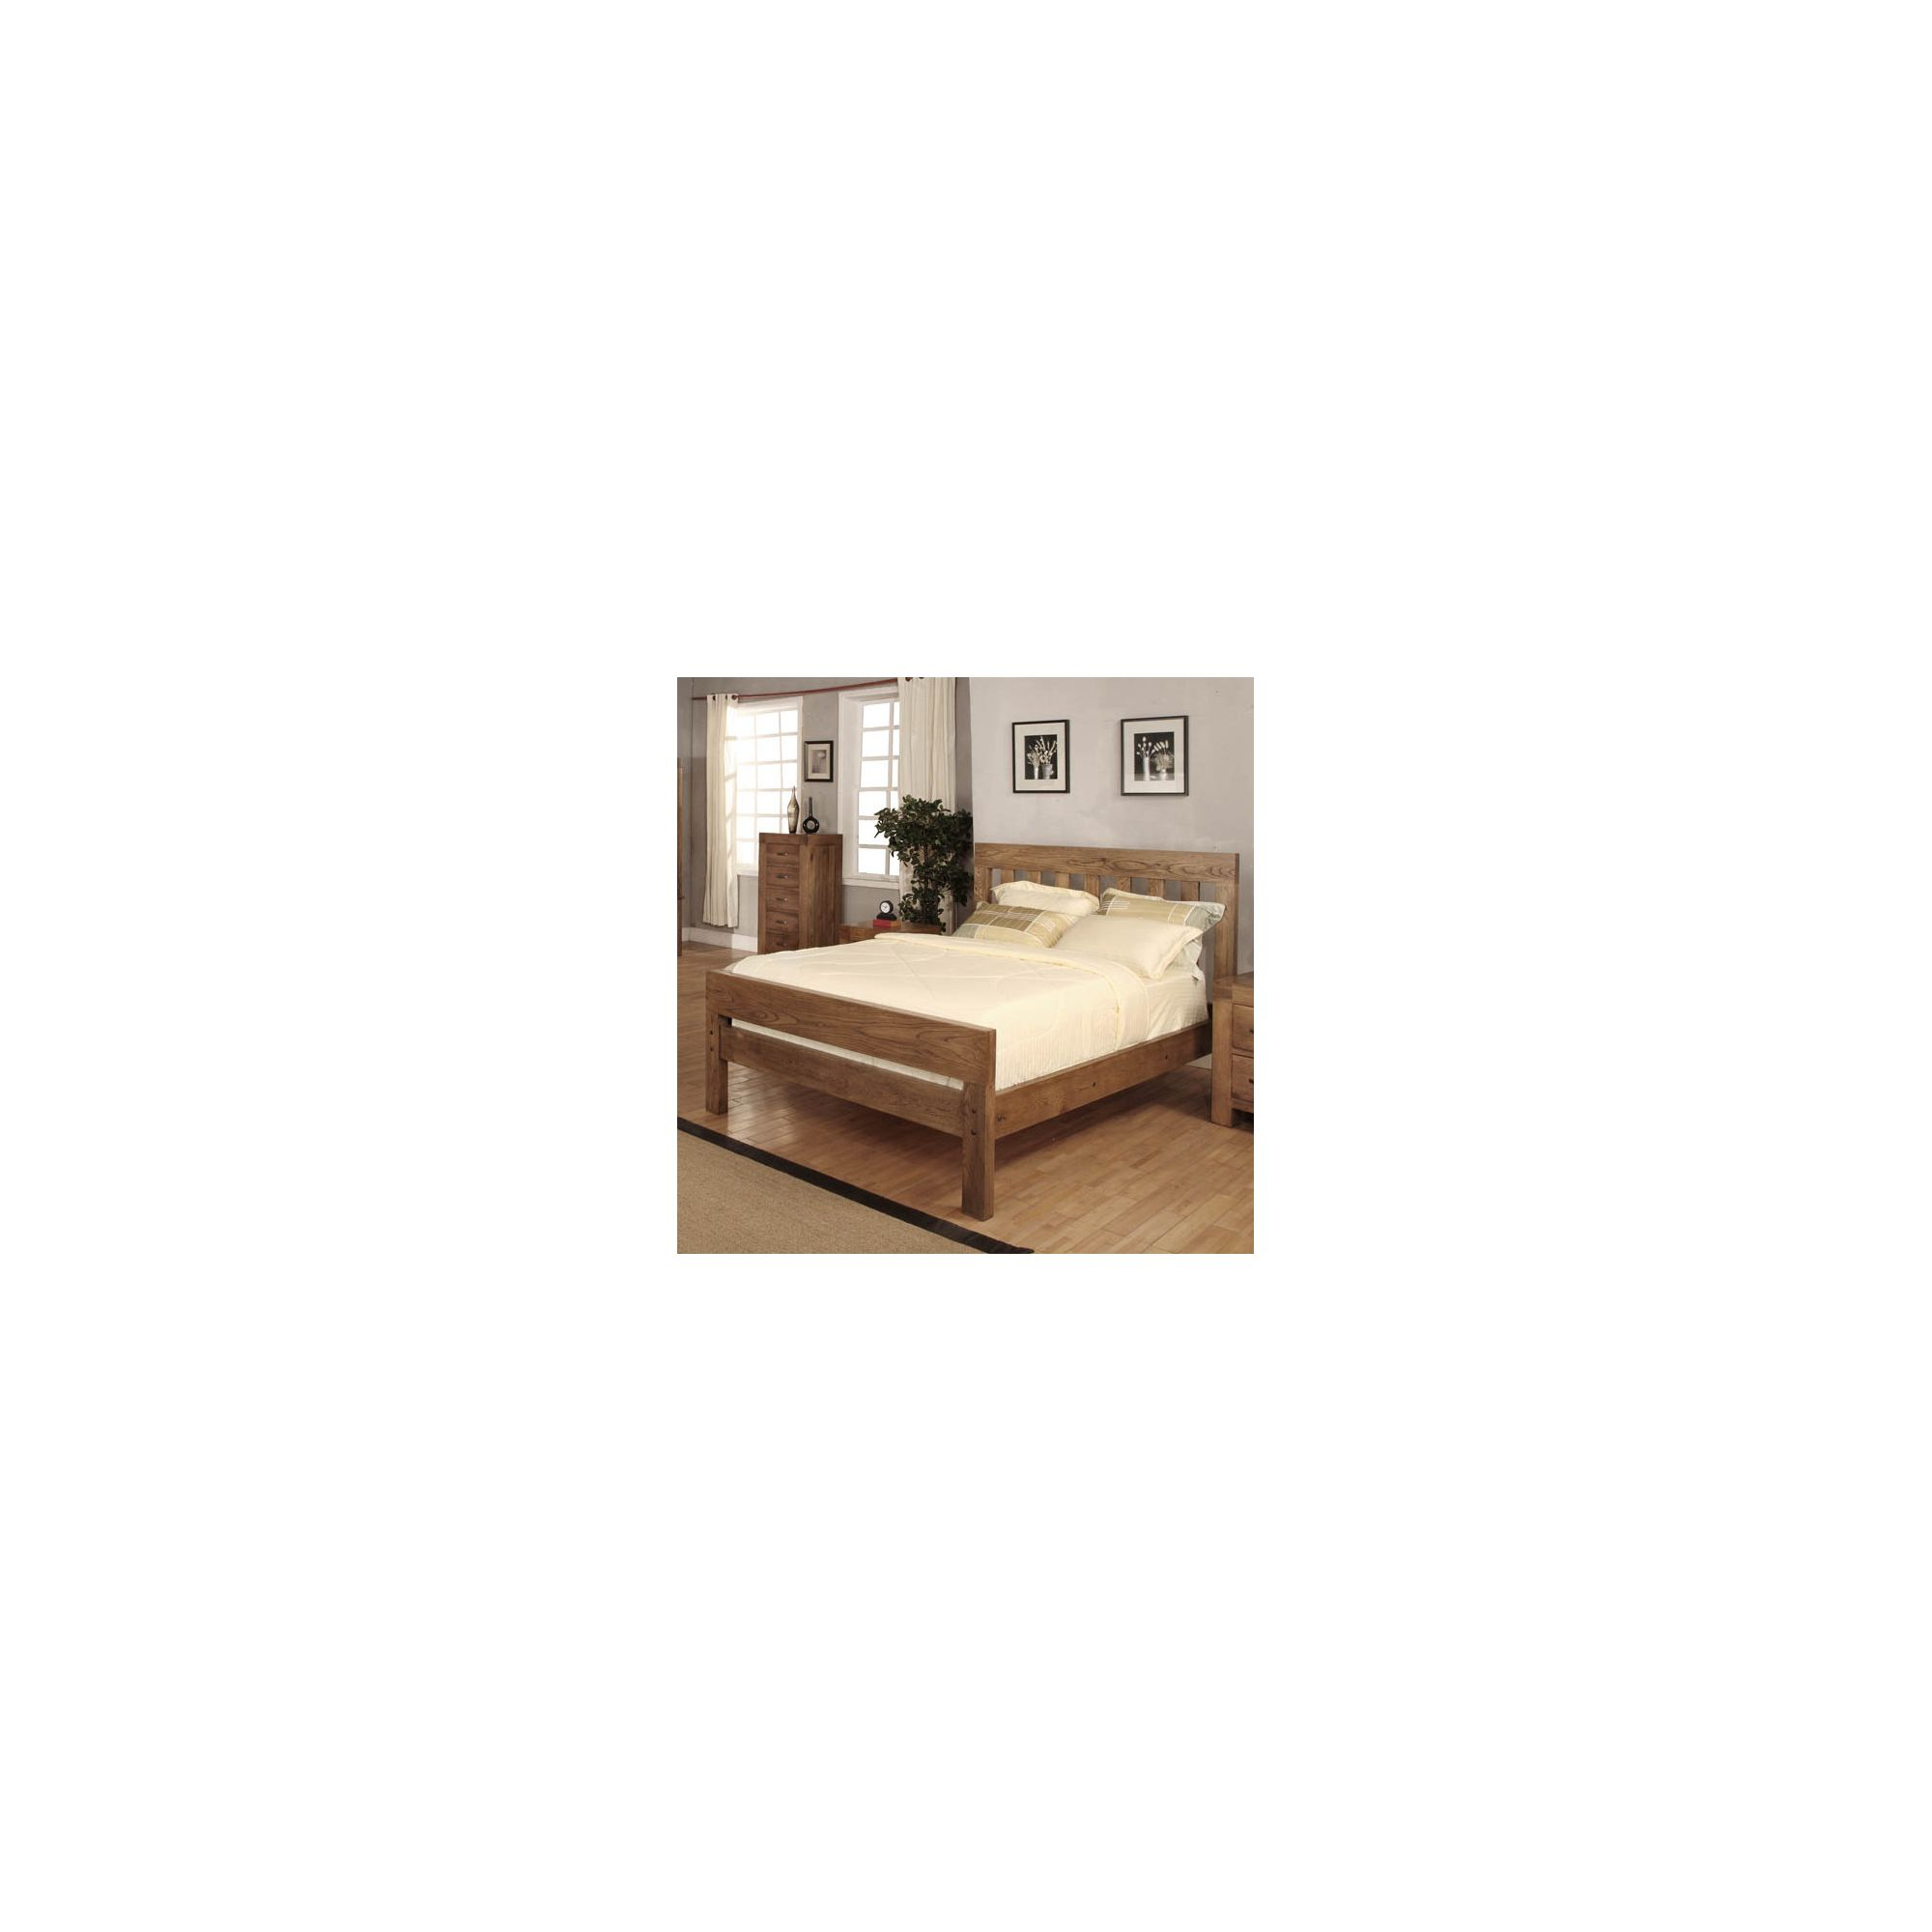 Hawkshead Santana Bed Frame - 4' 6'' Double at Tesco Direct